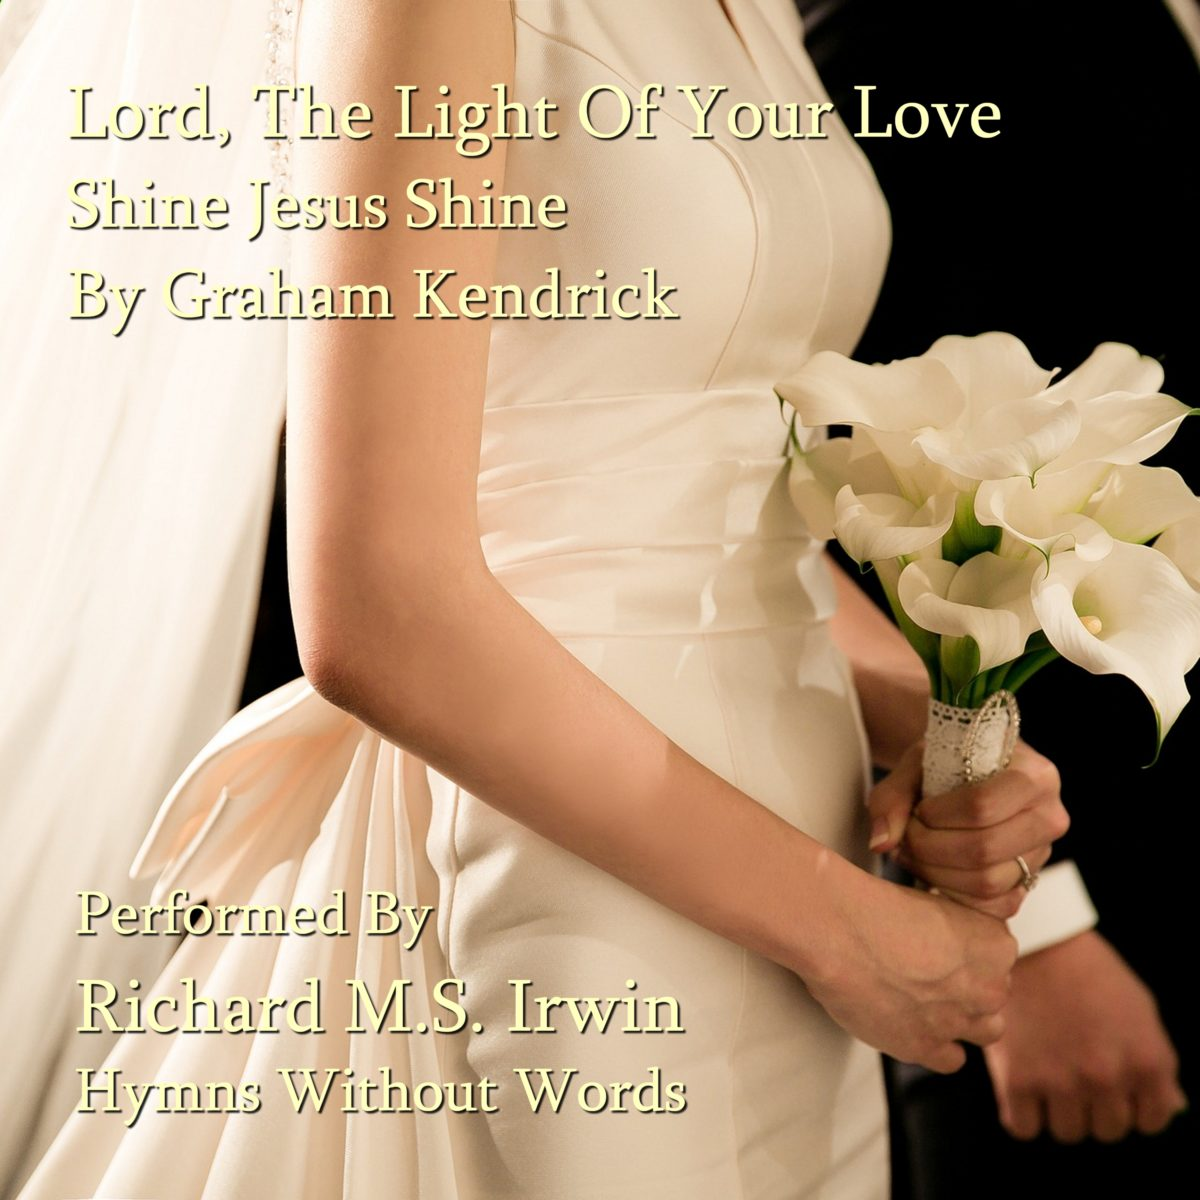 Lord The Light Of Your Love (Shine Jesus Shine – 3 Verses)